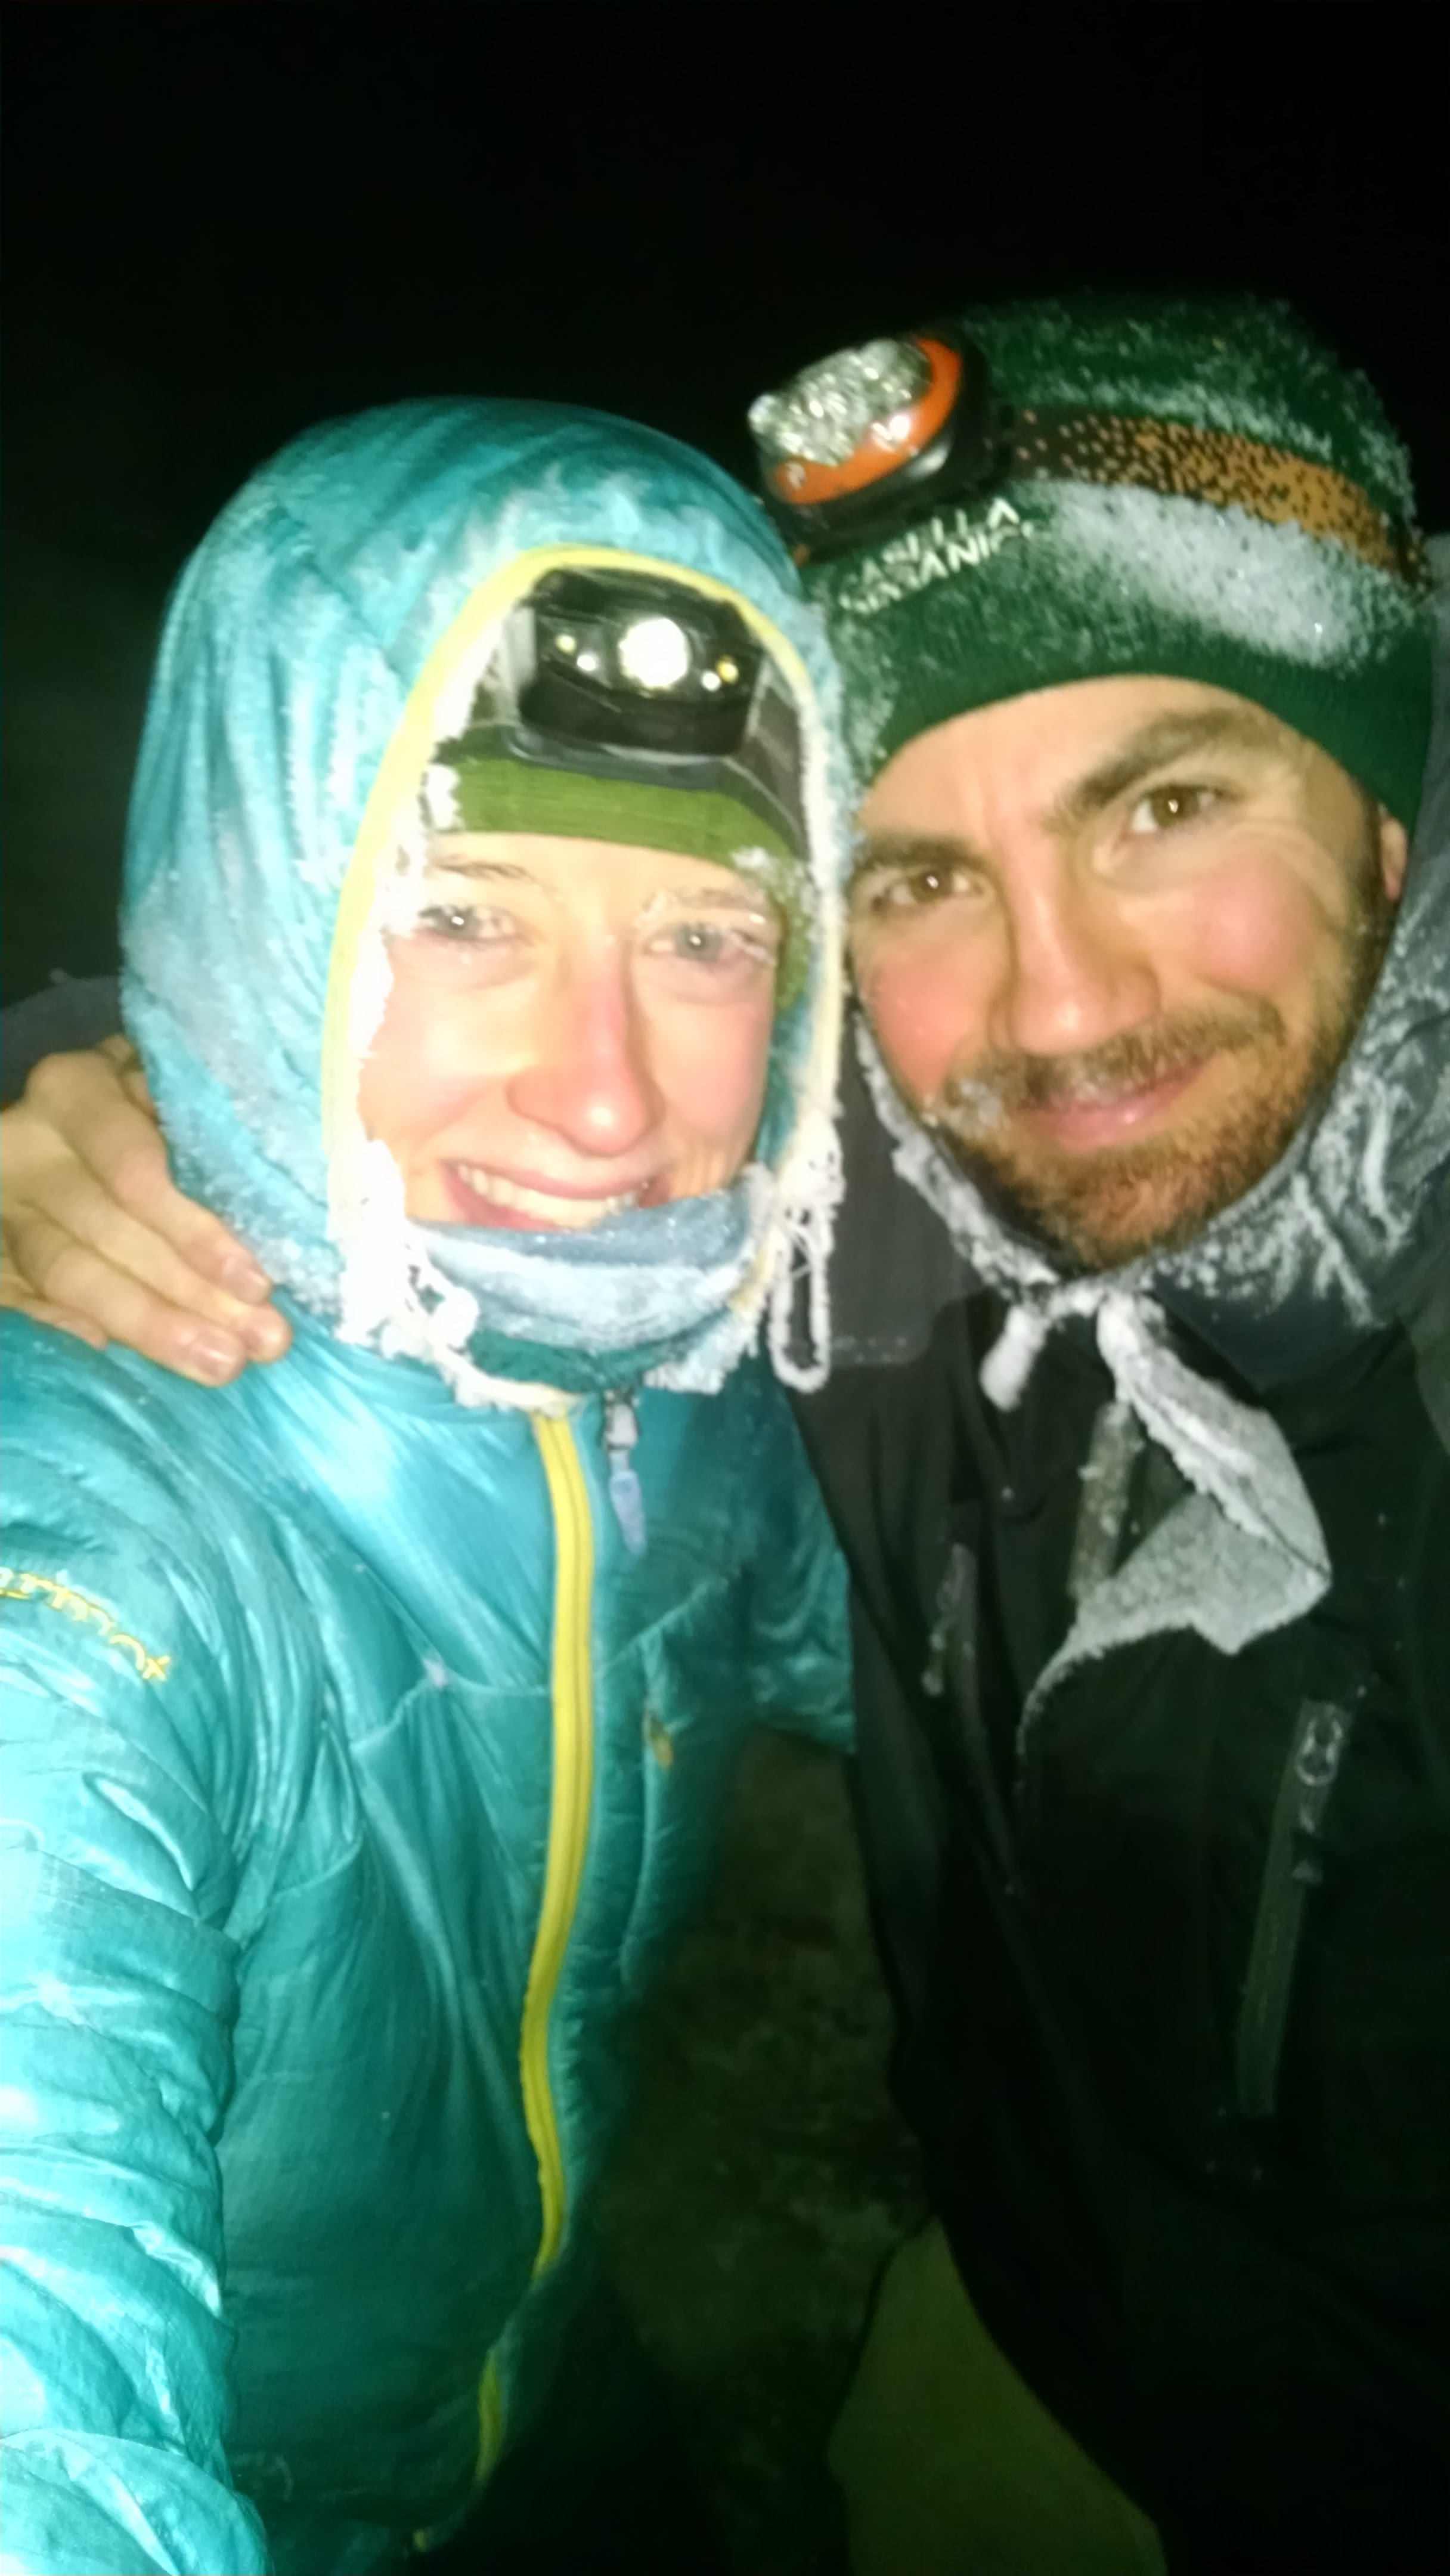 Doing some midnight training in sub-zero temps!